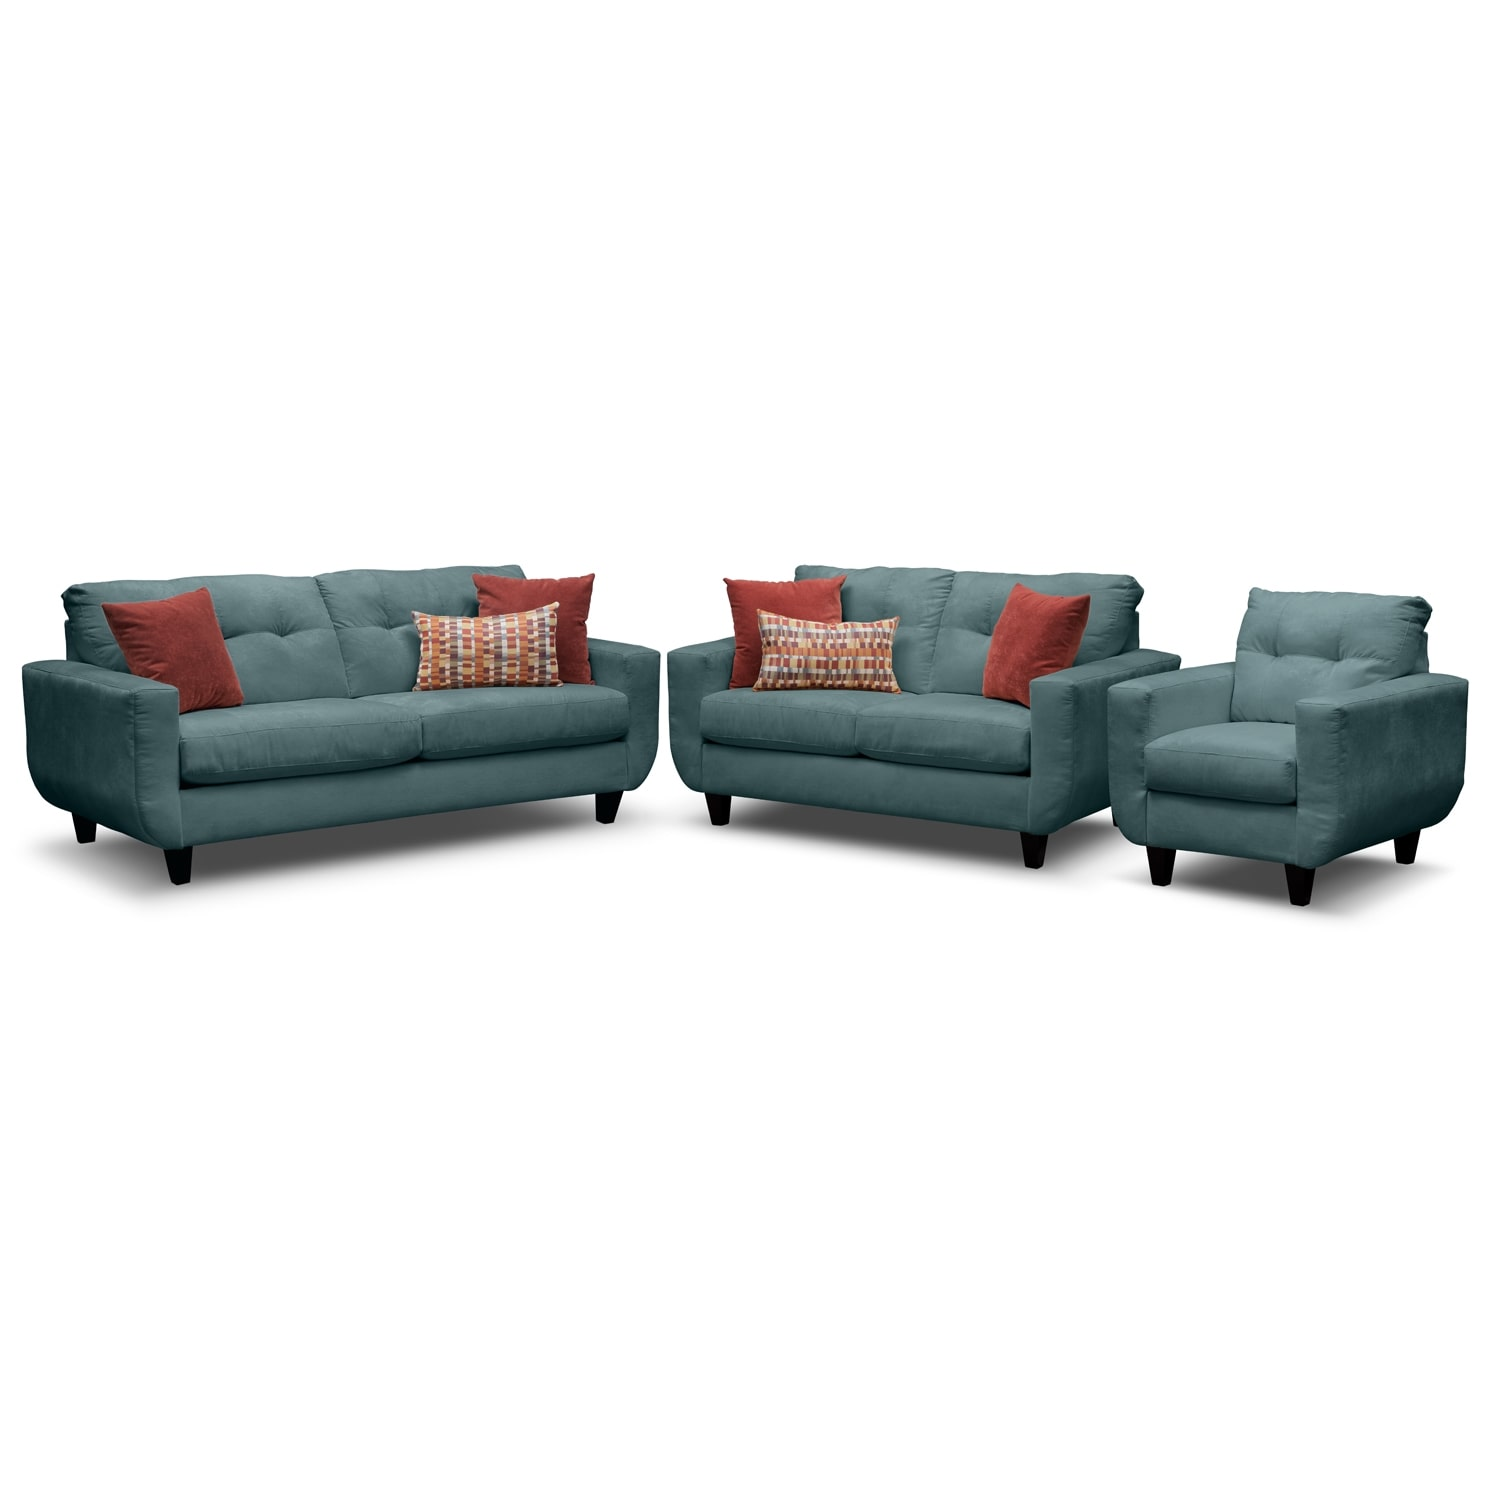 West Village Sofa, Loveseat and Chair Set - Blue